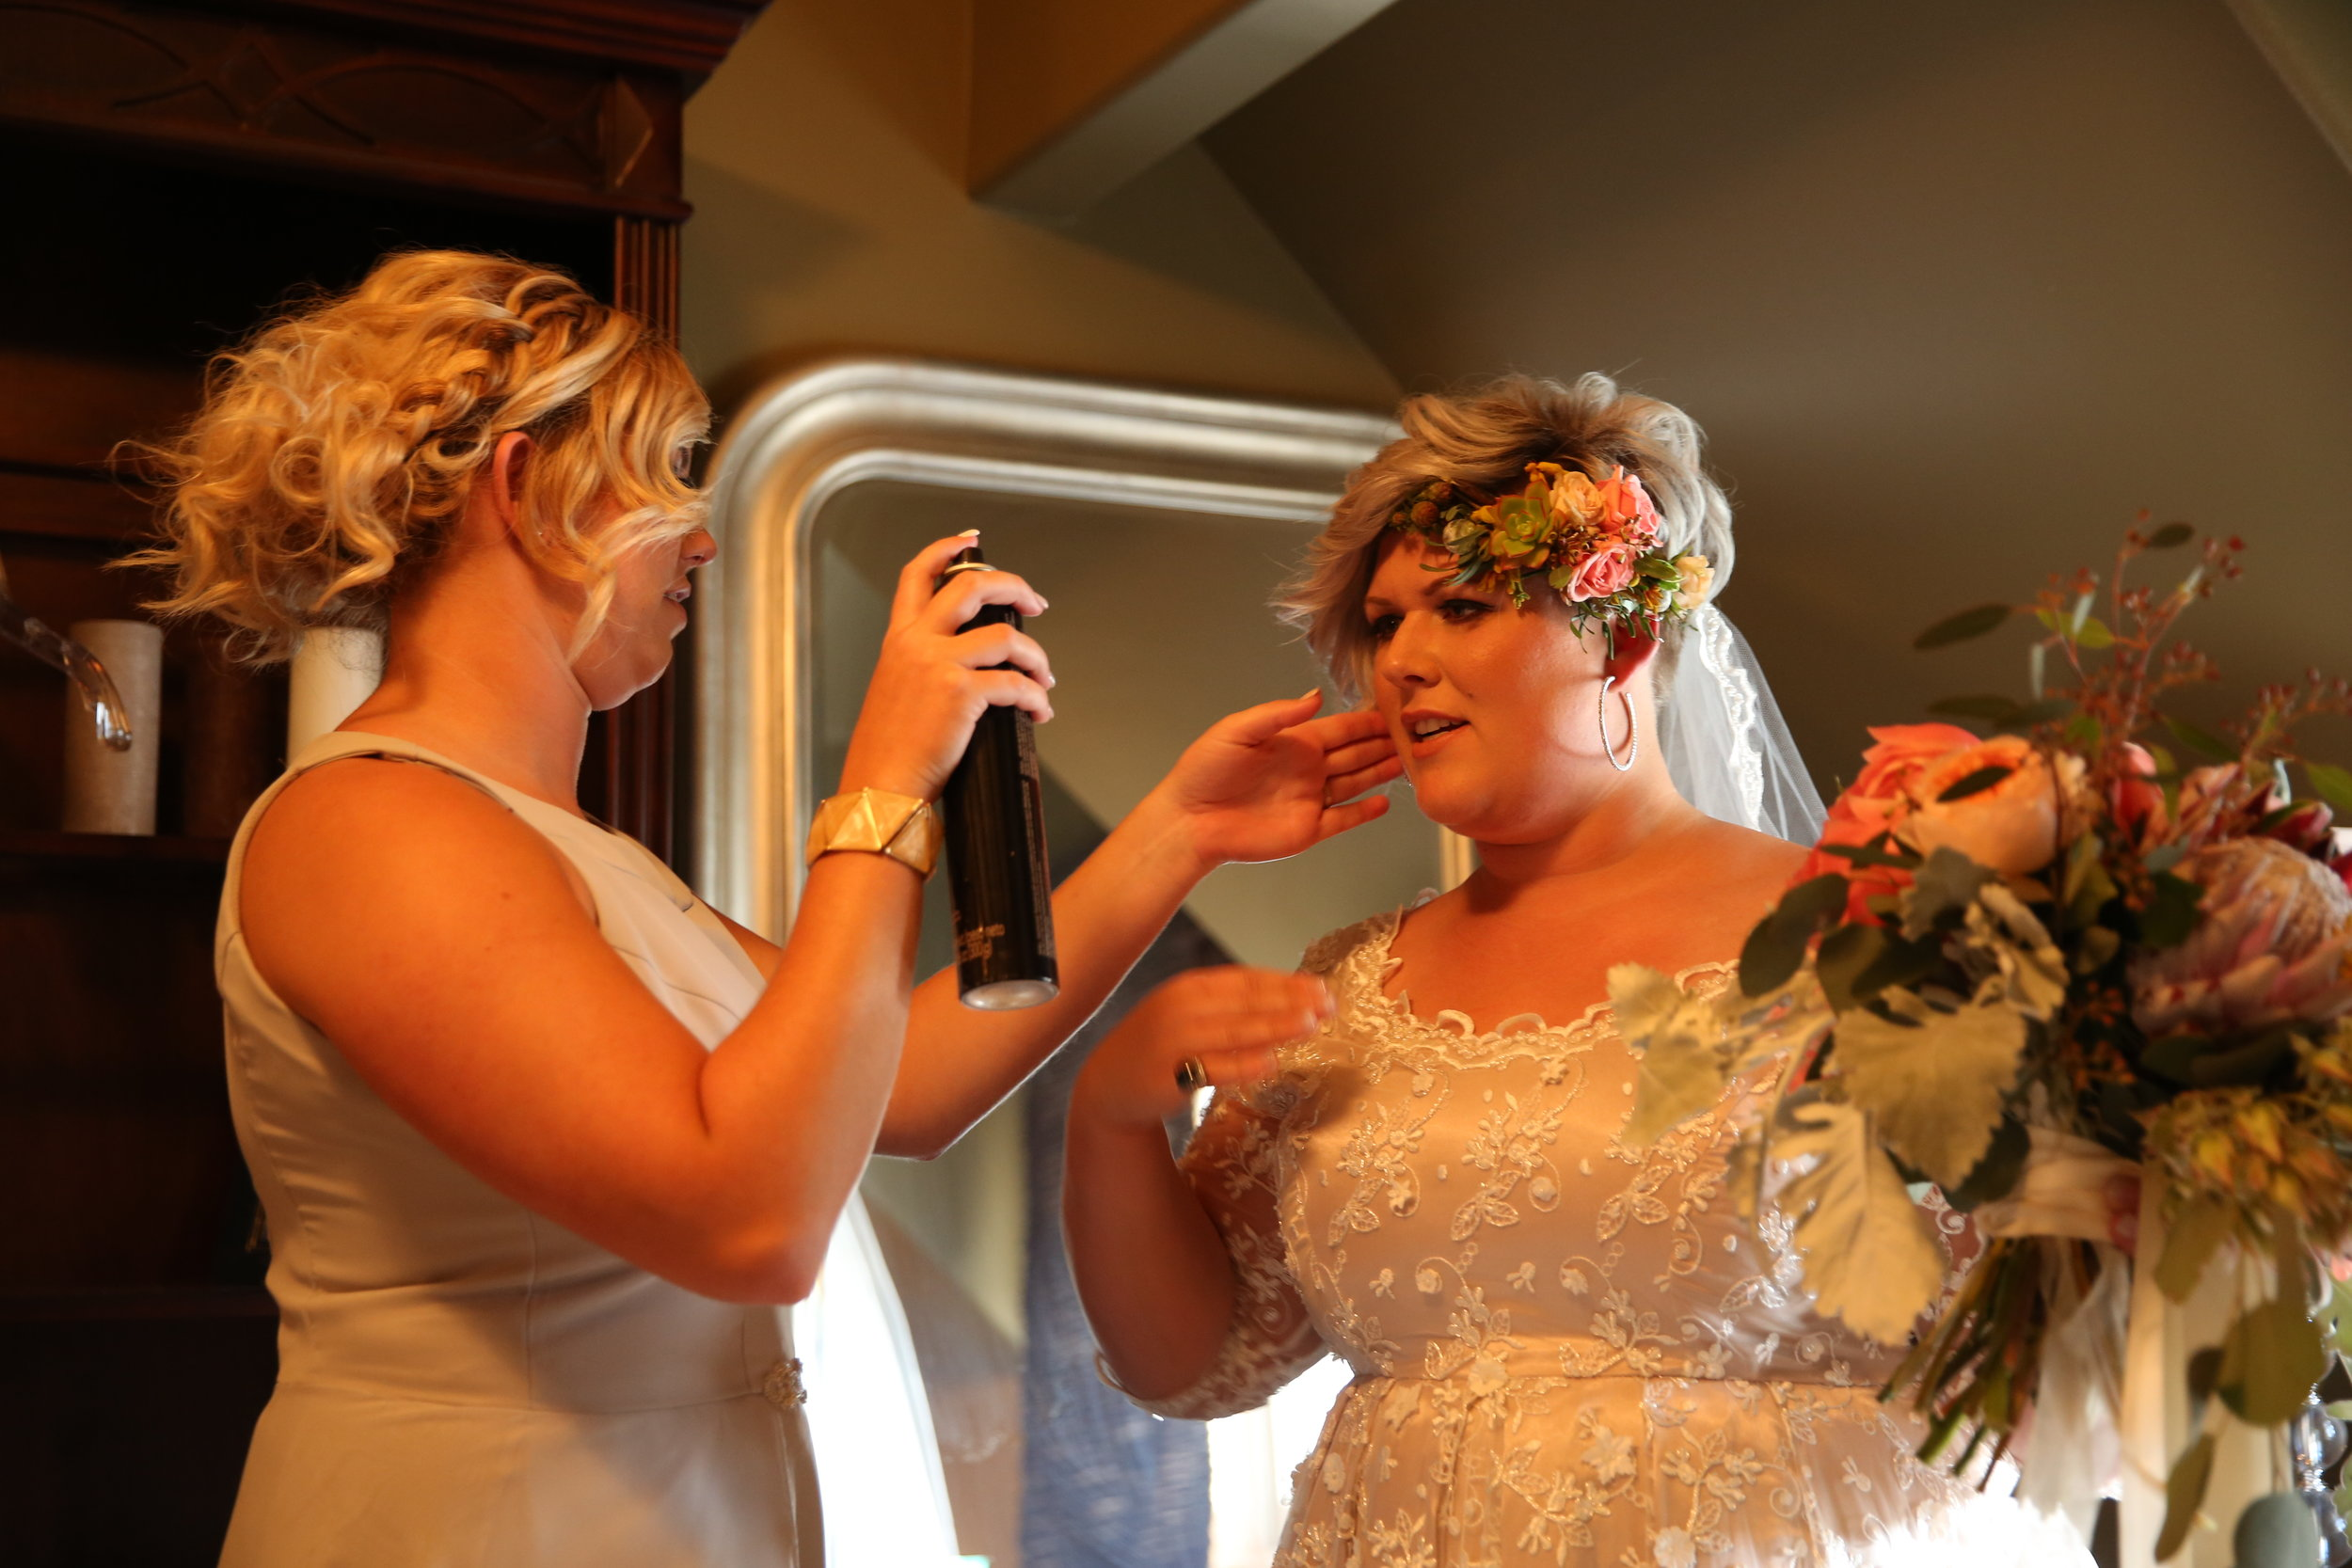 Bridesmaid putting one last spritz of hairspray on the bride just before she walks down the aisle on her wedding day.